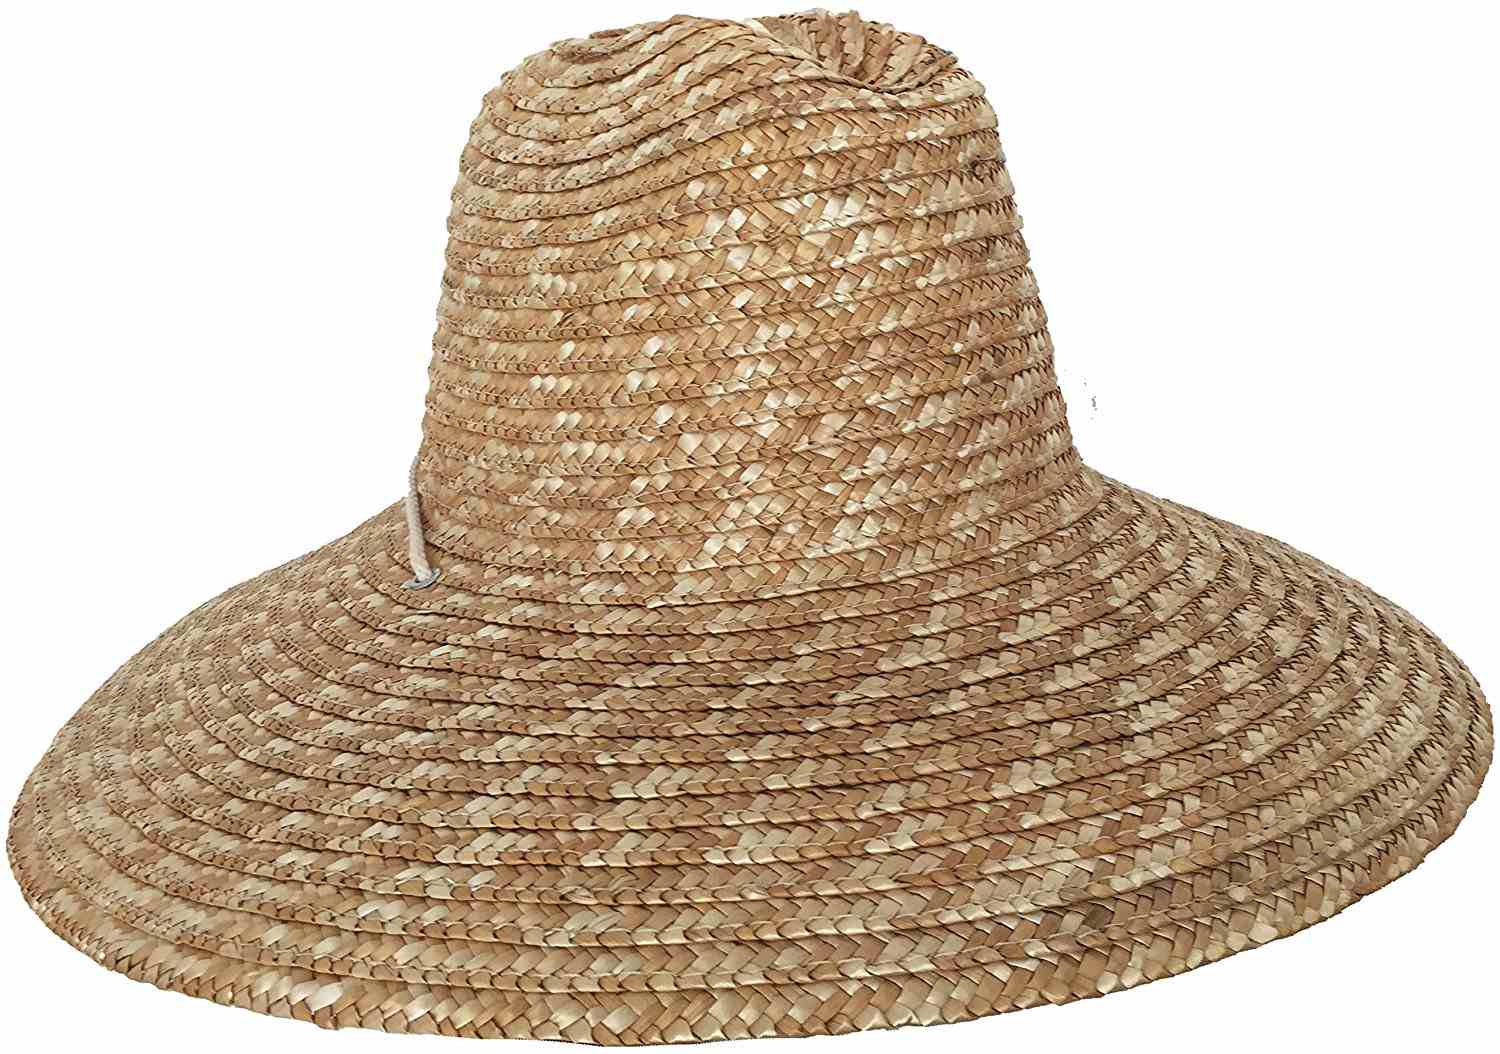 d4a596c41b5 Super Wide Brim Lifeguard Hat Straw Beach Sun Summer Surf Safari Gardening  UPF